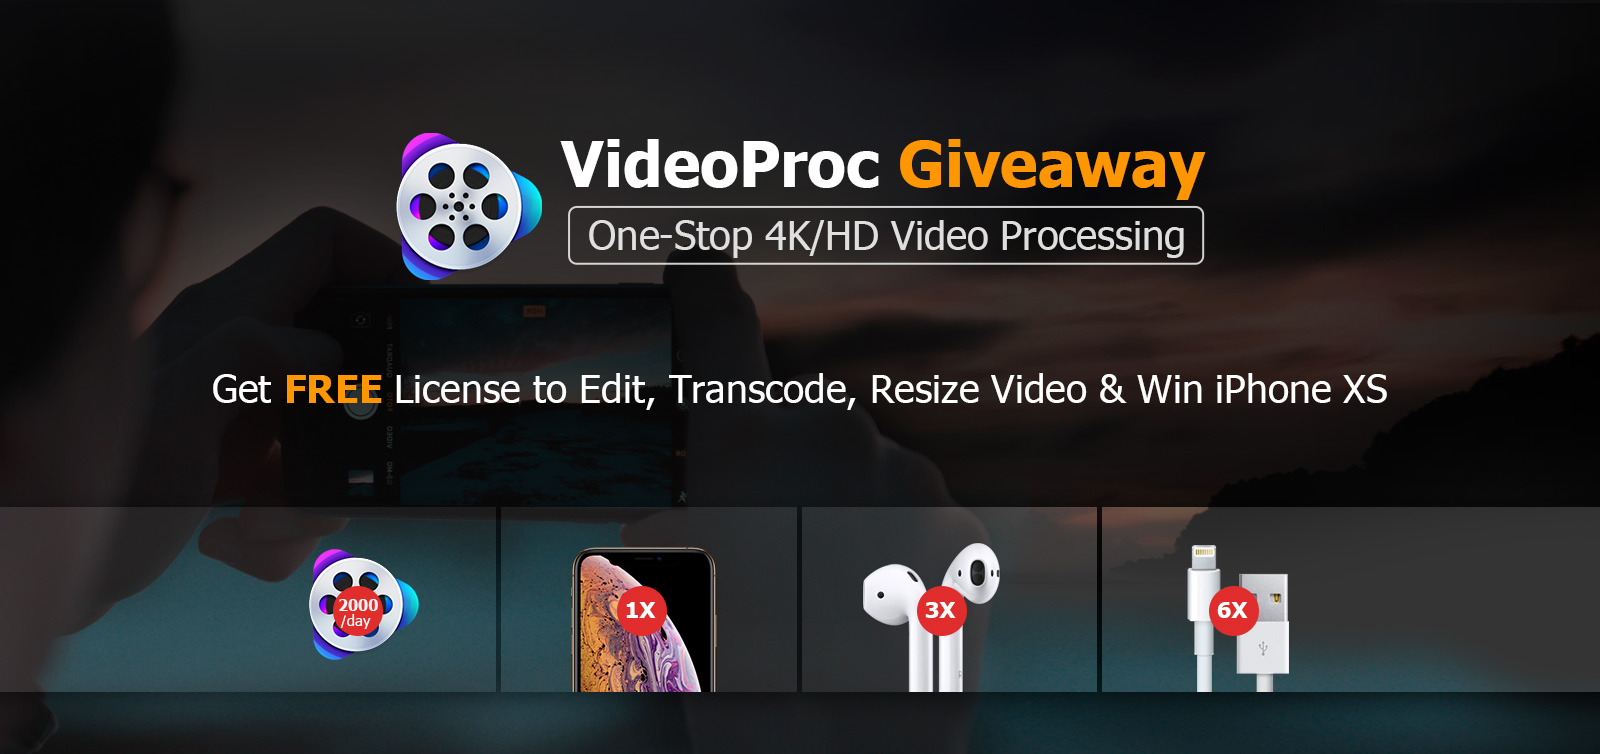 videoproc giveaway win iPhone XS and AirPods